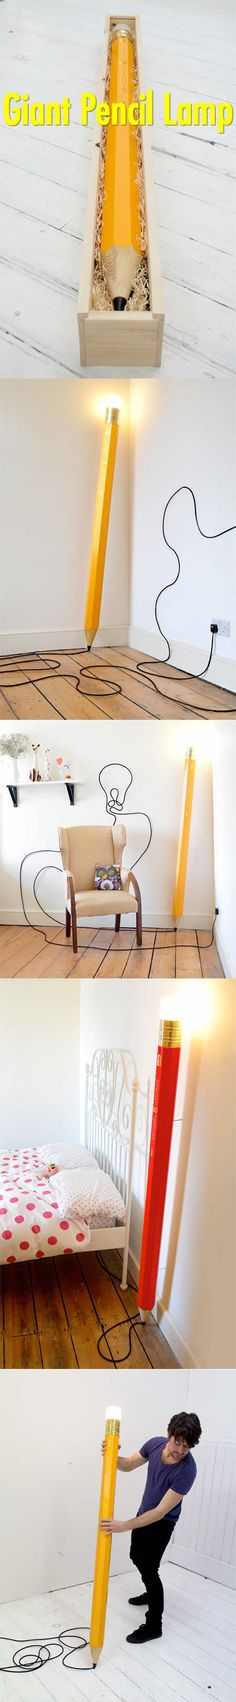 "Think out of the box! Unique lamp designed to look like a giant wooden pencil allows you to draw on walls and floors with an extra long cord.Made by talented husband and wife team Michael and Georgie Gettings.""Giant Pencil Lamp"" comes packaged inside of a large wooden box.via toxel.com"